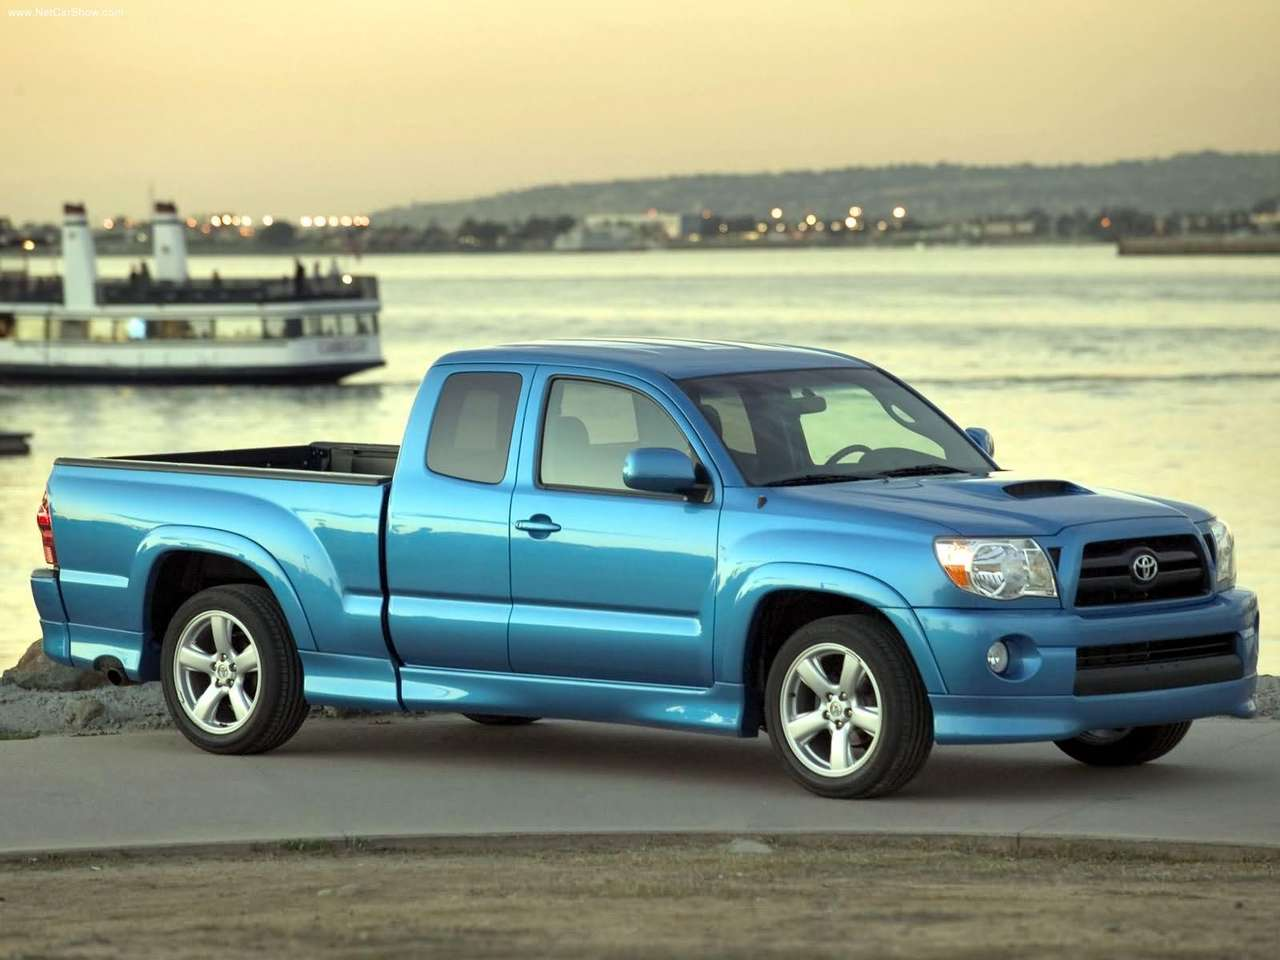 2005 toyota tacoma xrunner toyota autos spain. Black Bedroom Furniture Sets. Home Design Ideas